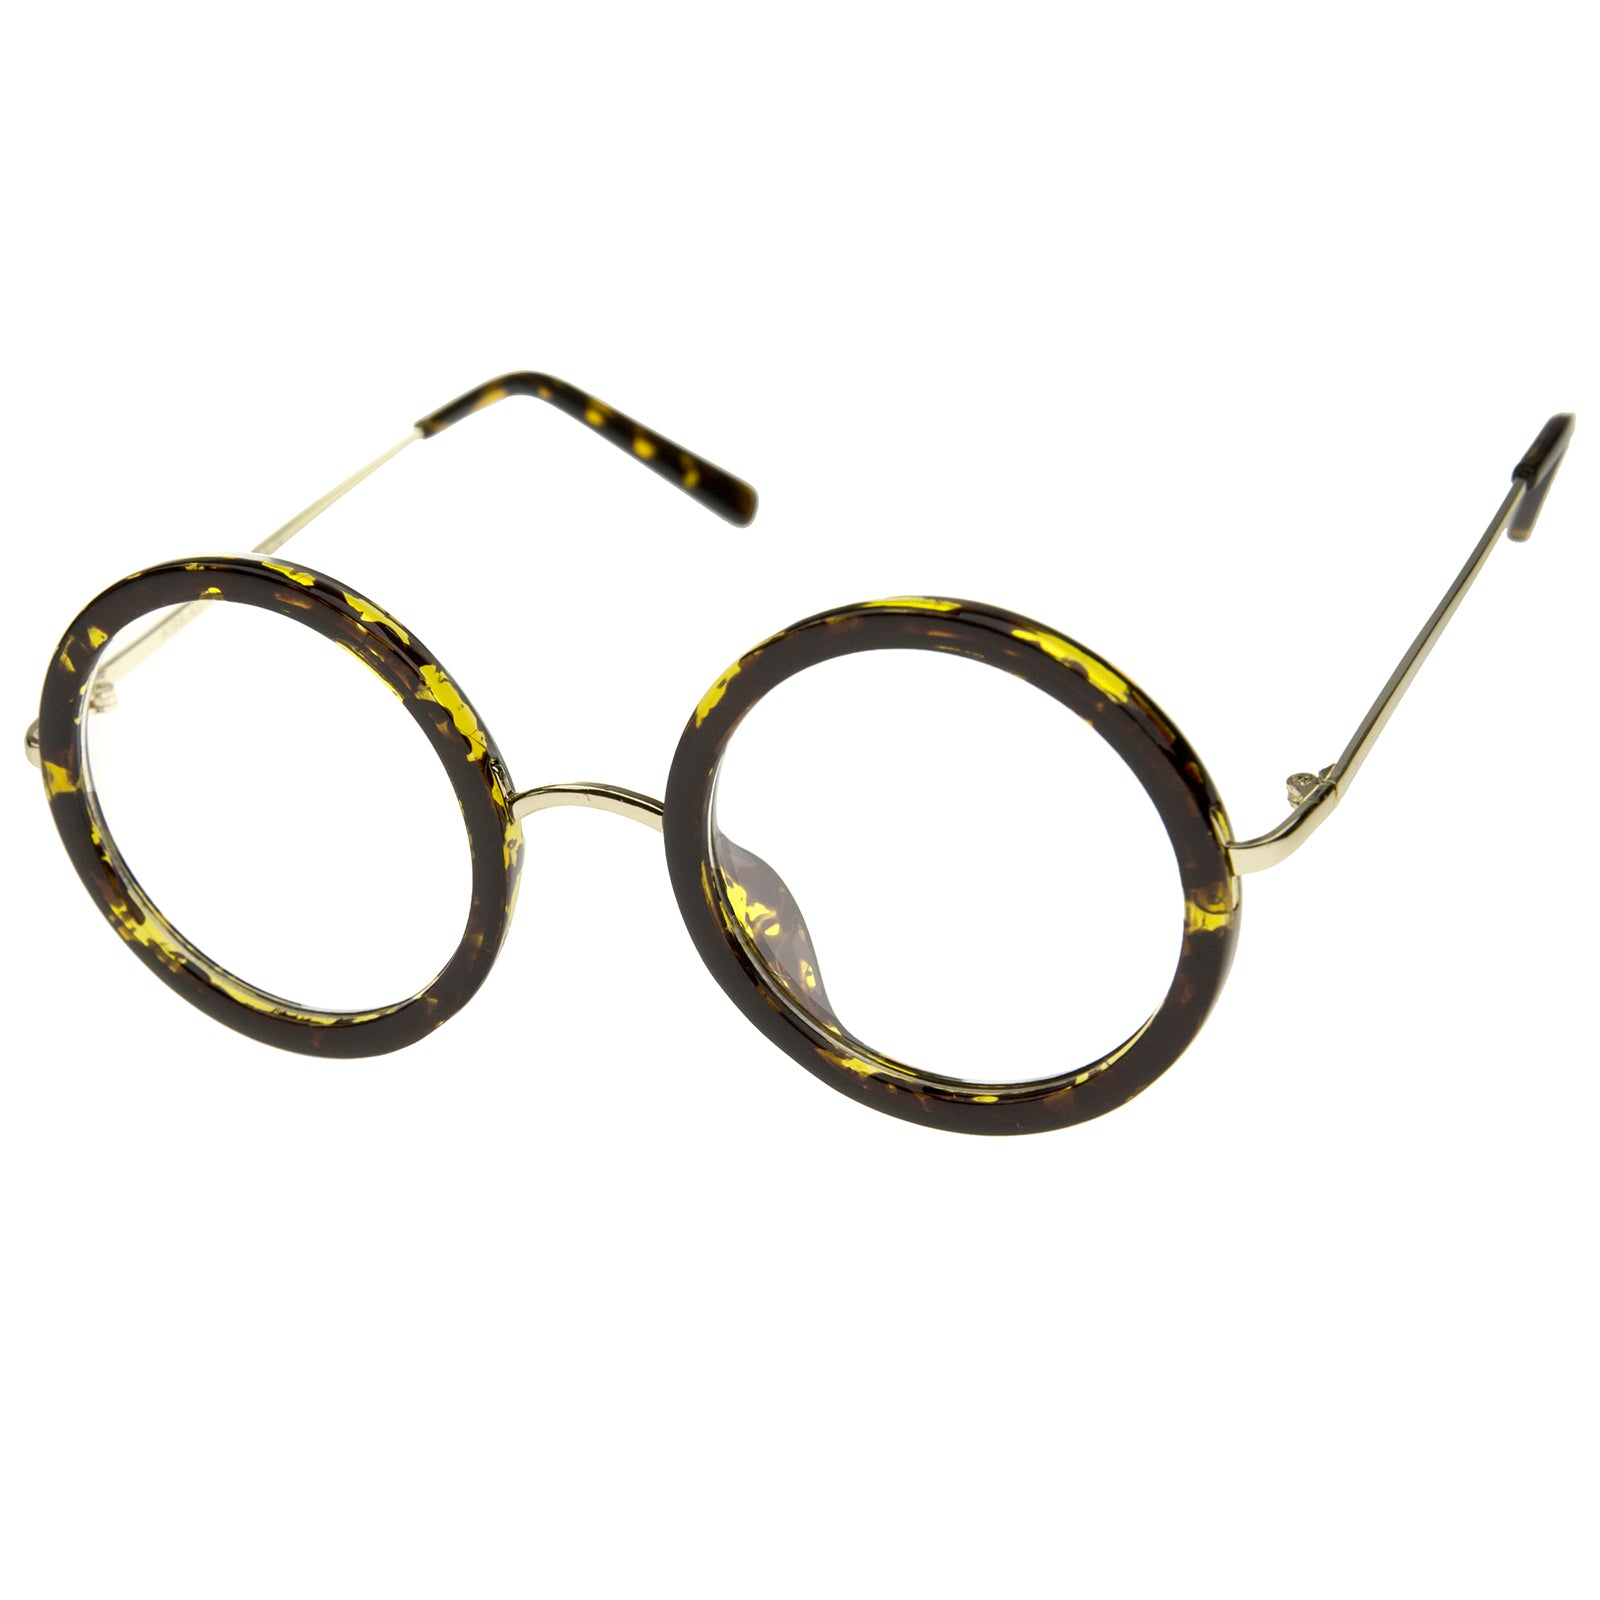 Lennon Retro Fashion Thick Frame Metal Temple Round Clear Lens Glasses 50mm - sunglass.la - 2